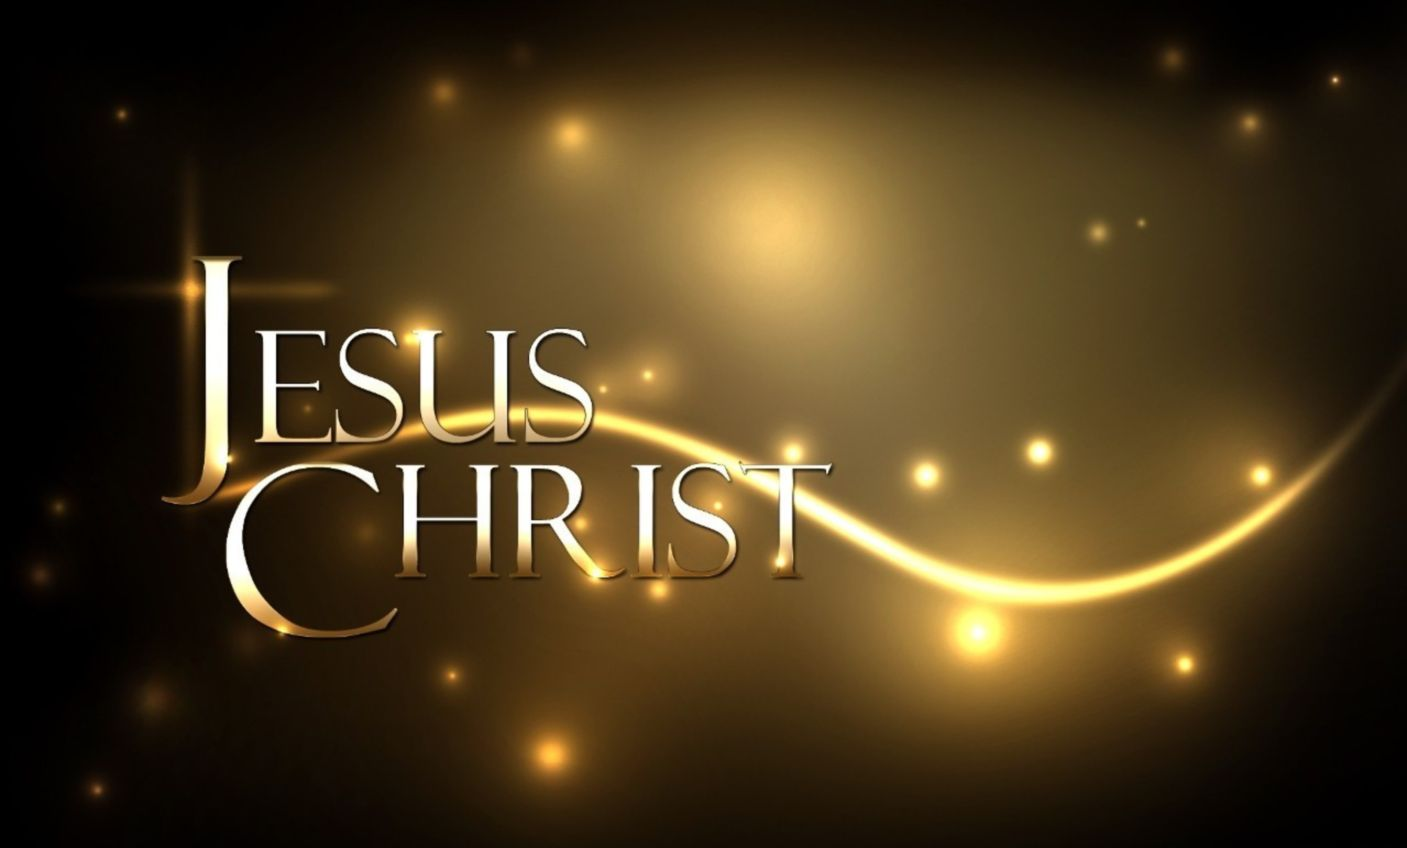 Download free HD Awesome Jesus High Resolution Wallpaper, image